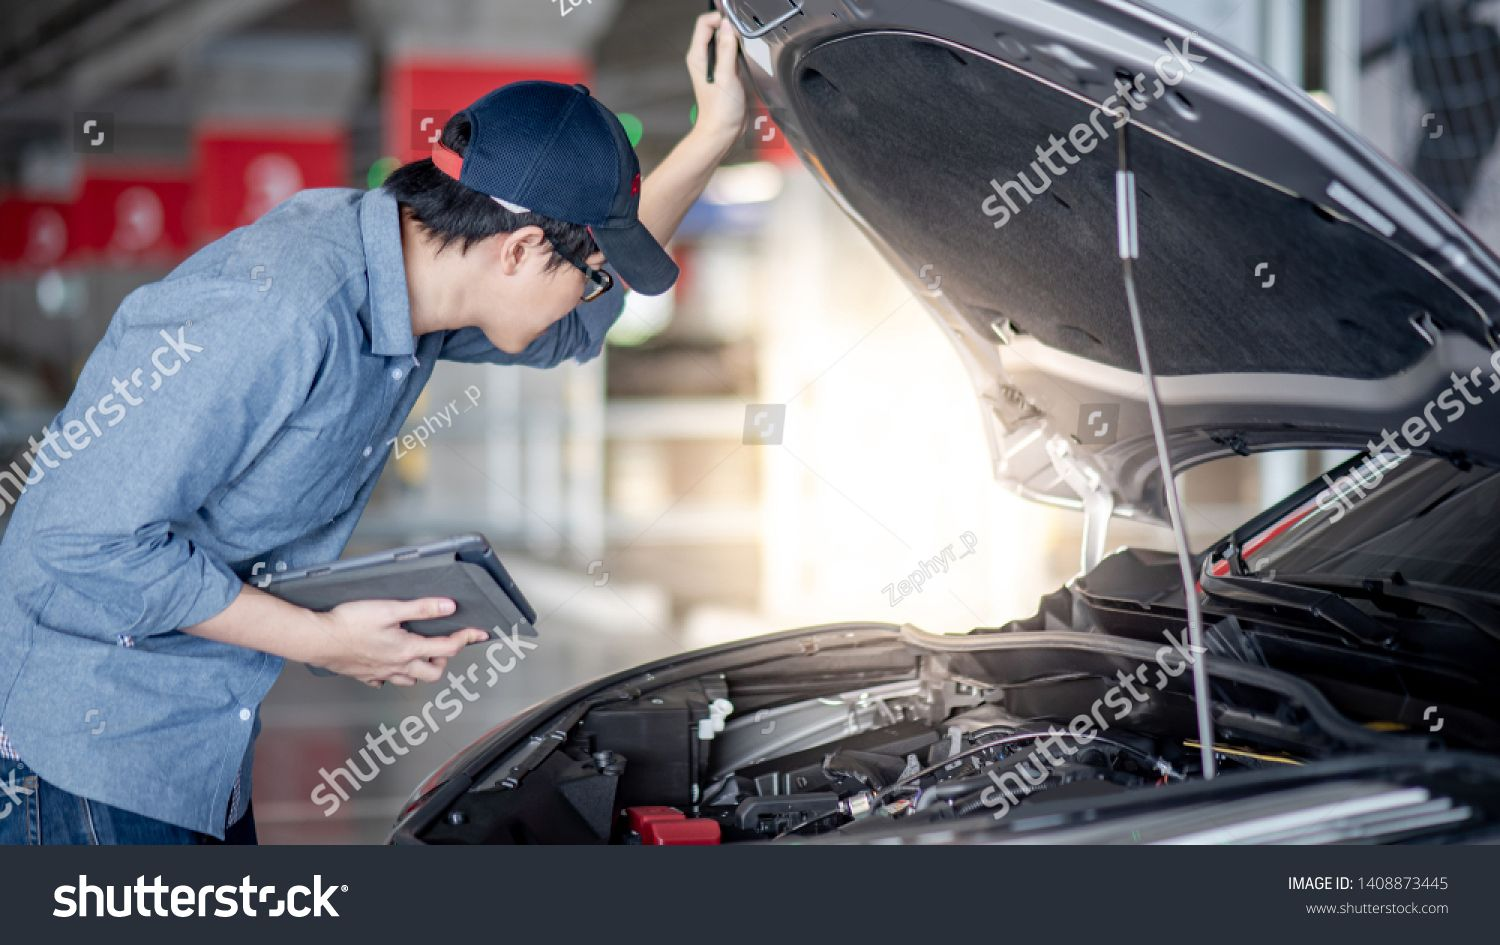 Asian Auto Mechanic Holding Digital Tablet Checking Car Engine Under The Hood In Auto Service Garage Mechanical M Car Repair Service Auto Service Car Mechanic